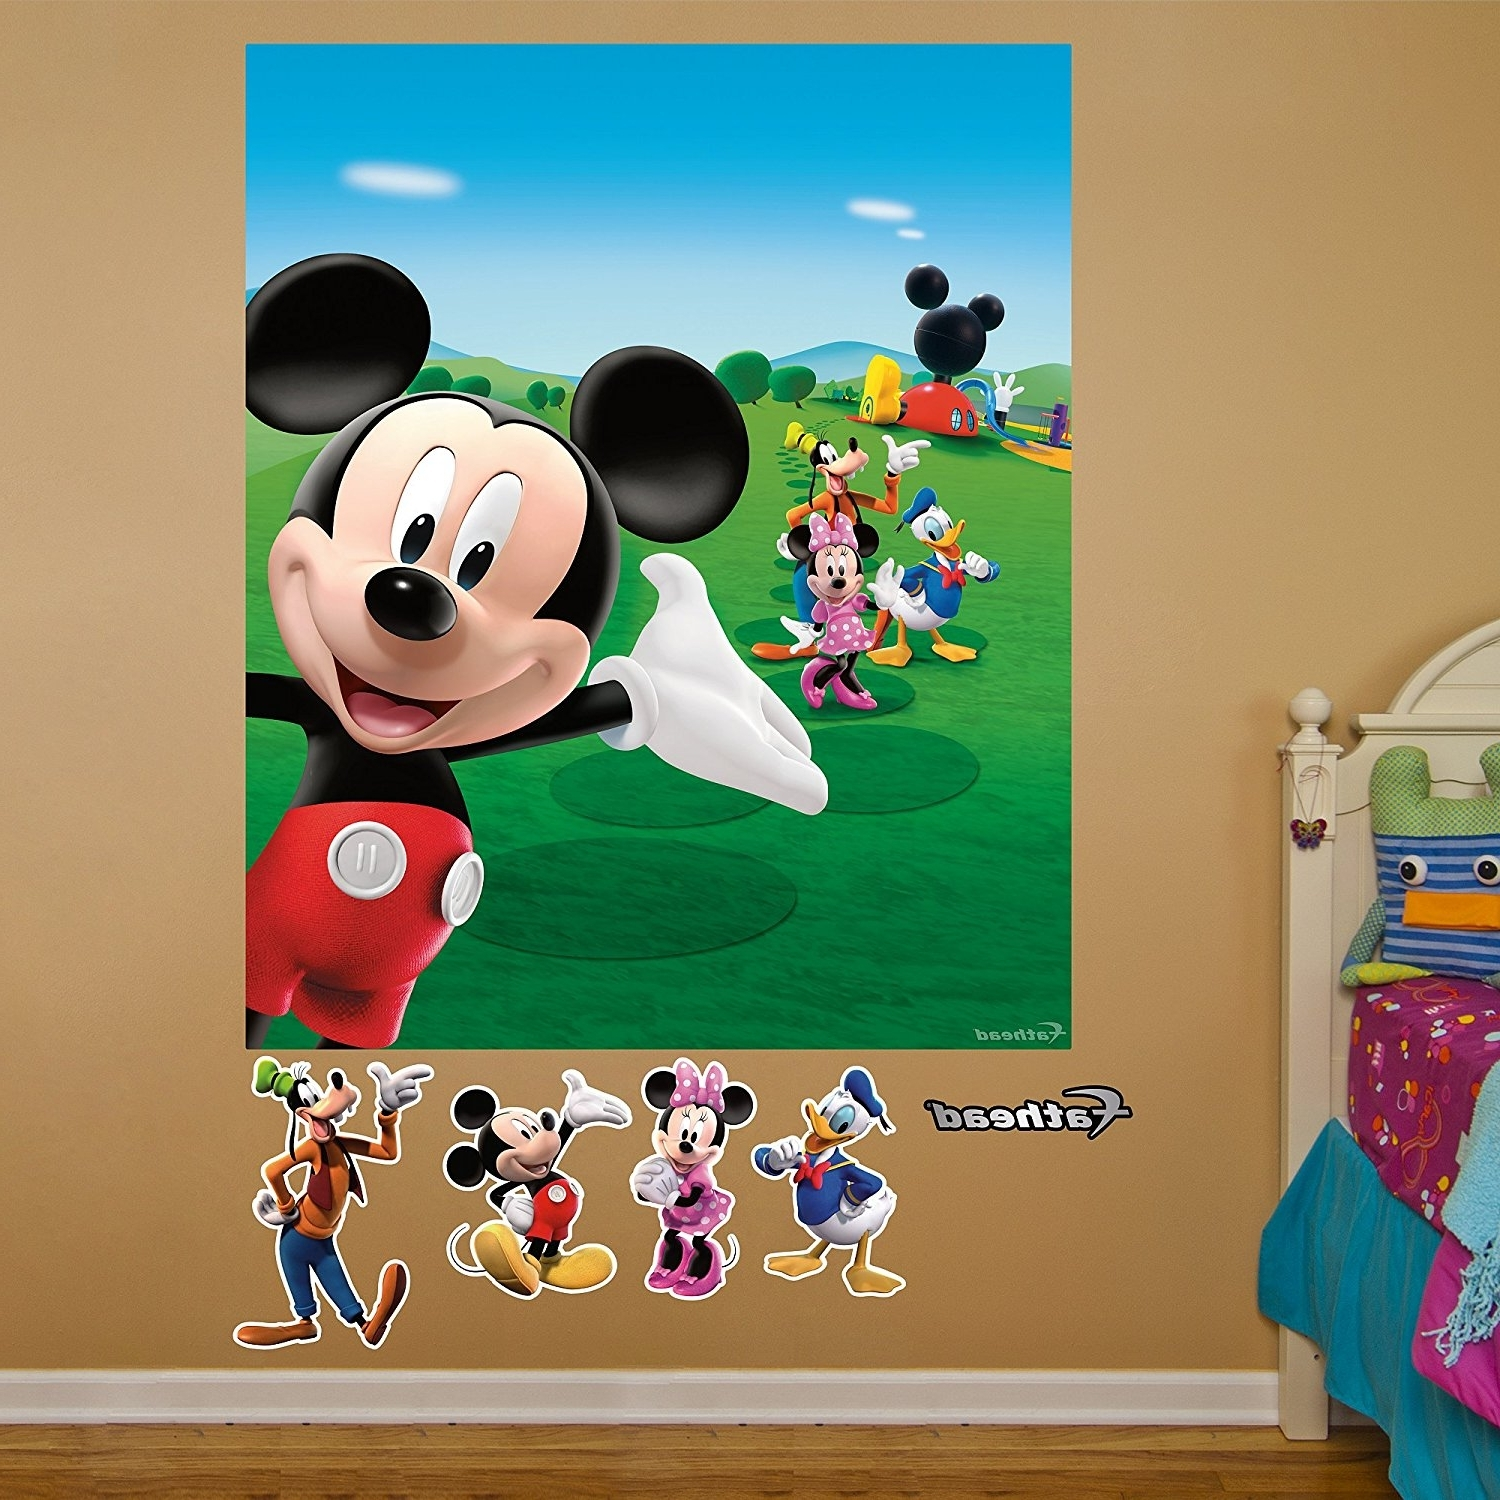 Popular Amazon: Fathead Mickey Mouse Clubhouse Mural Graphic Wall Intended For Mickey Mouse Clubhouse Wall Art (View 13 of 15)